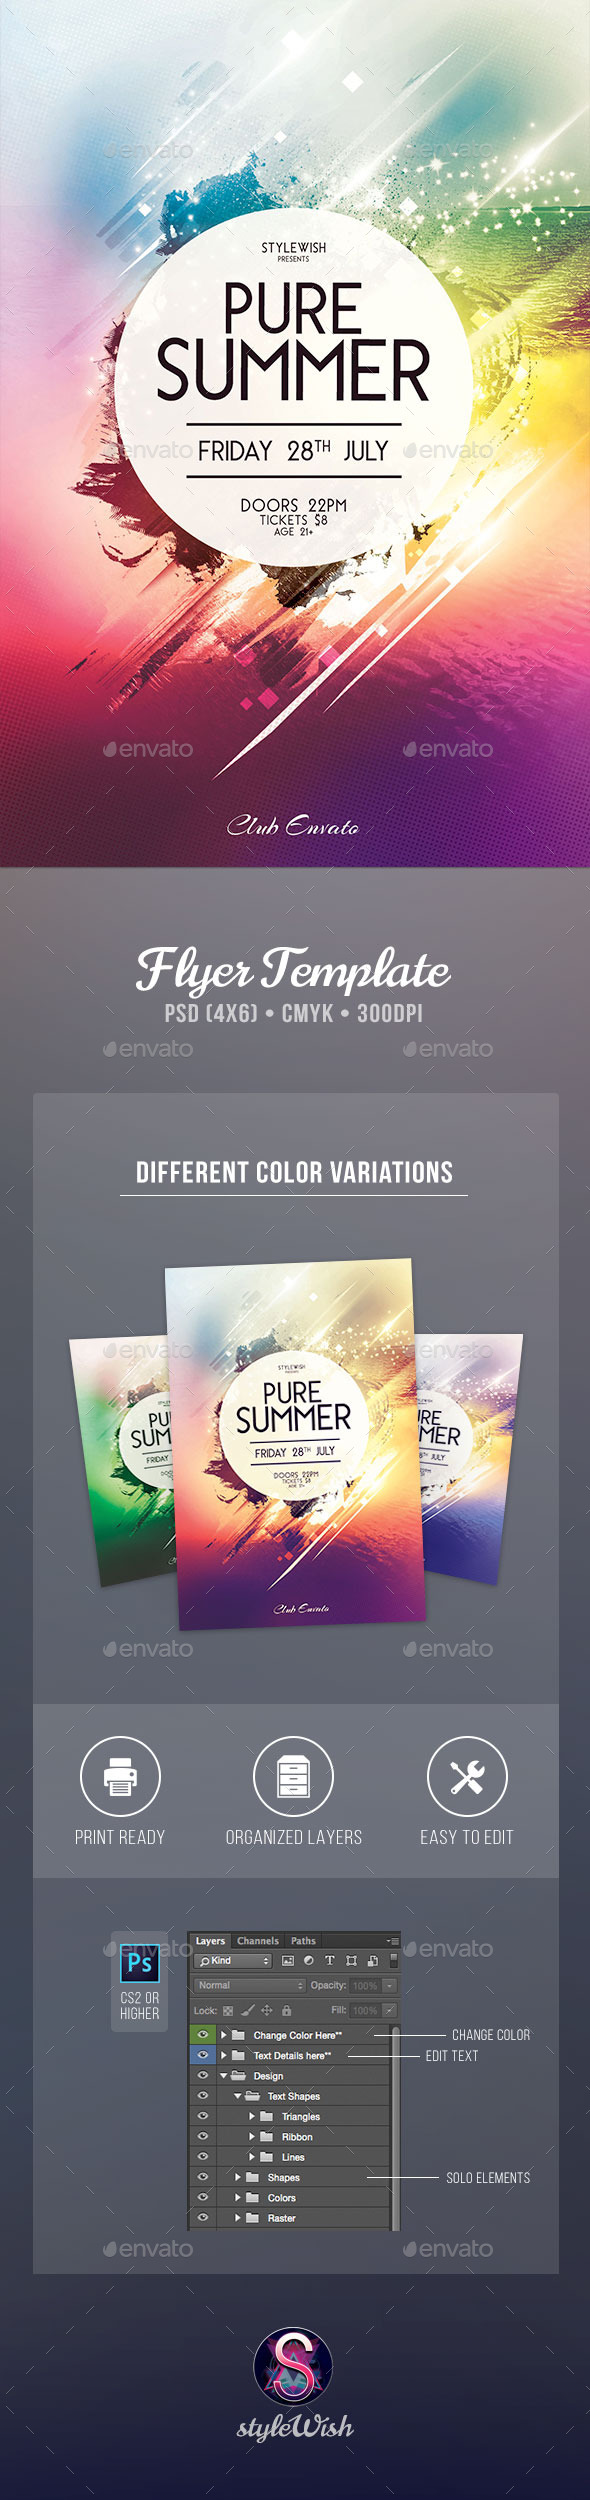 GraphicRiver Pure Summer Flyer 11859496